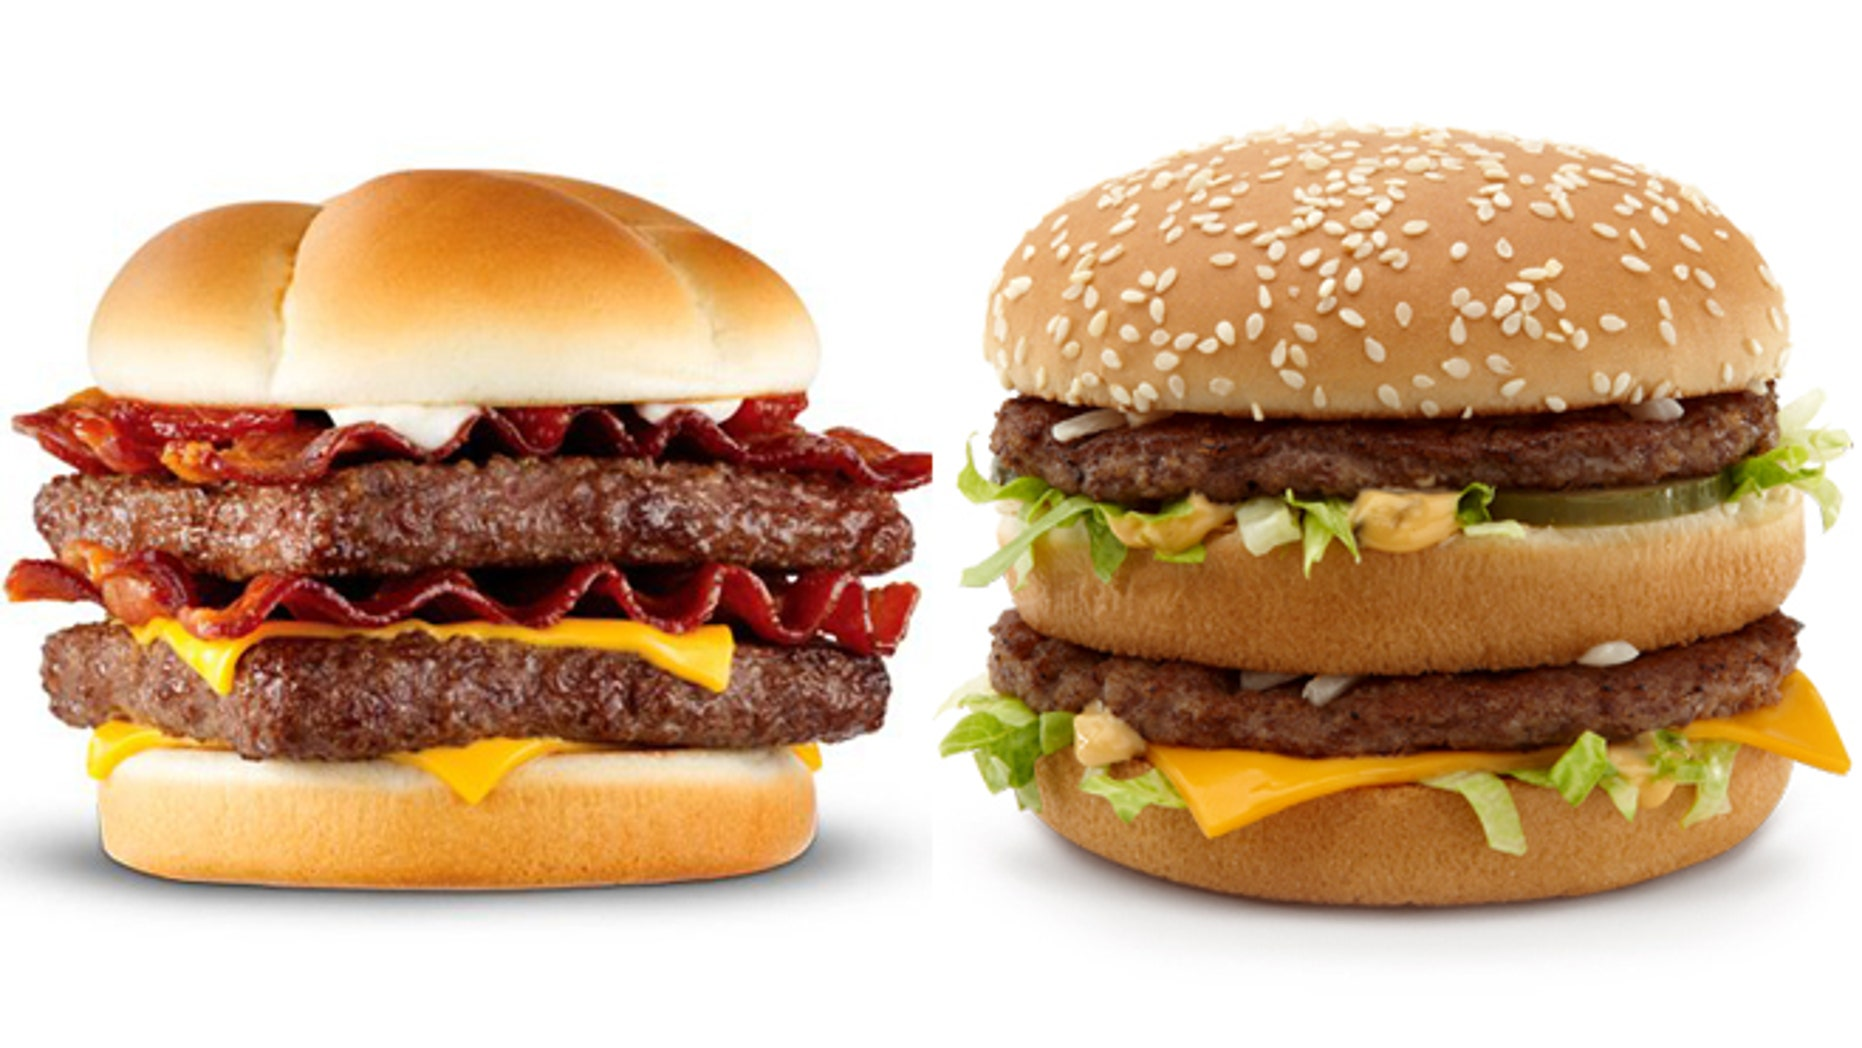 Which has more fat: the Baconator or the Big Mac?